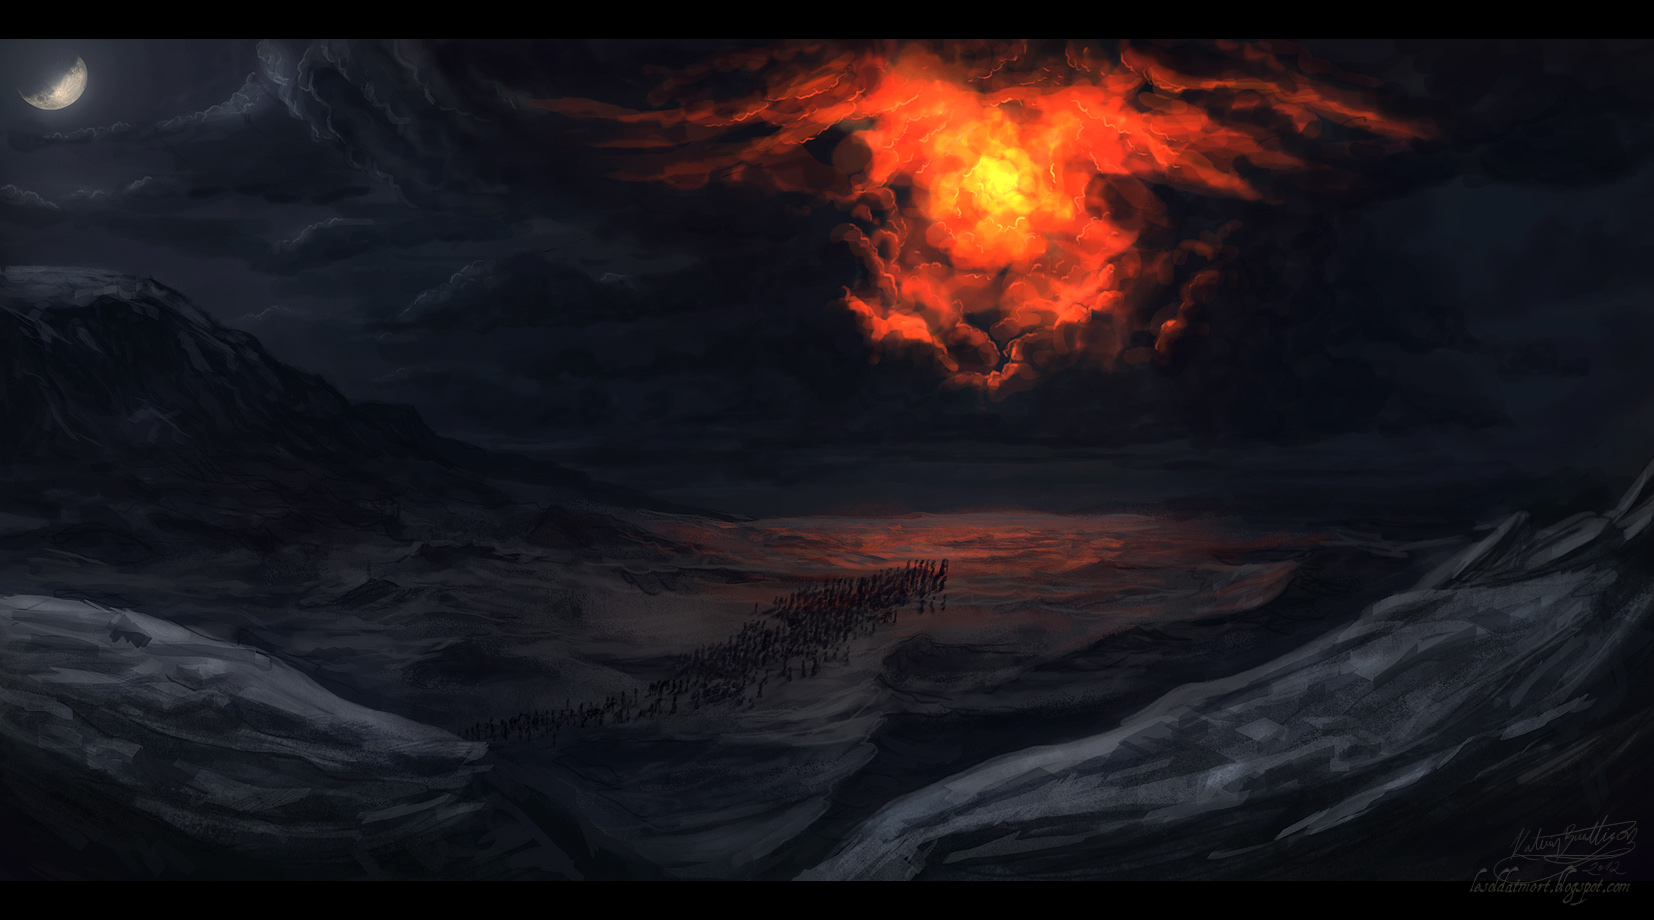 pillar of cloud and fire - 1199×667